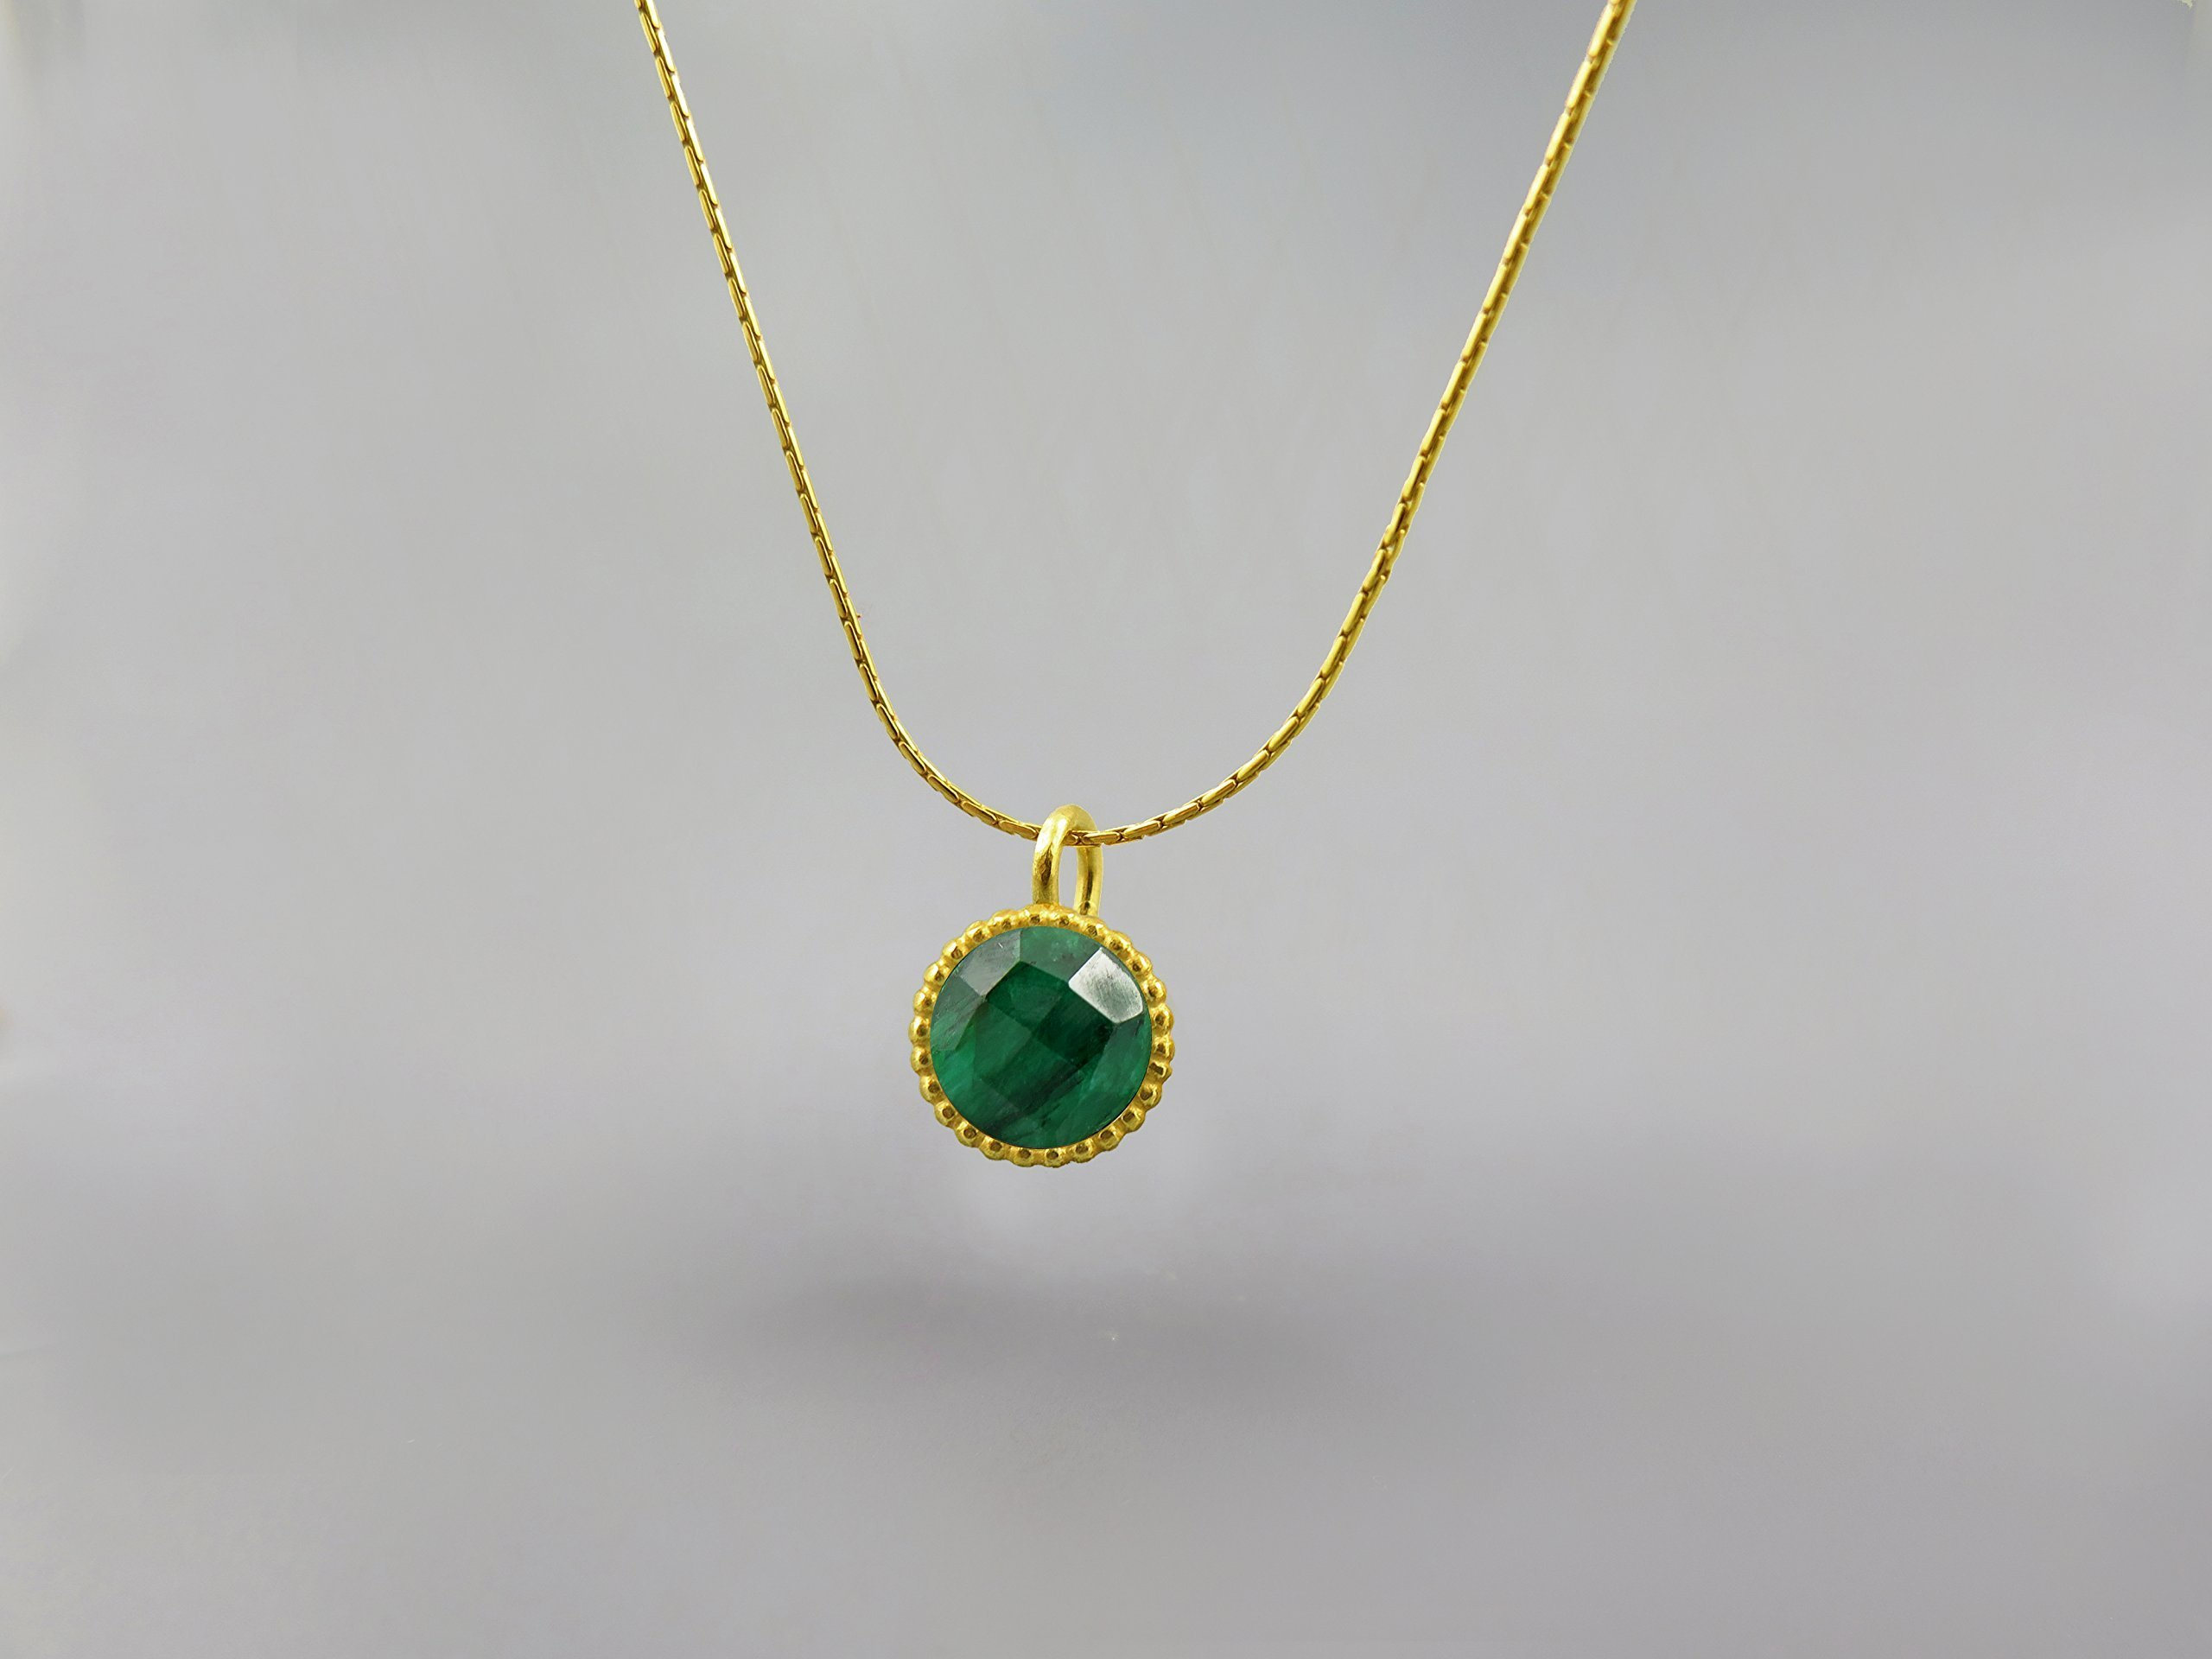 Emerald Genuine Gemstone Round Pendant Necklace For Women 18K Gold Plated May Birthstone Jewelry Emerald Necklace Emerald Pendant Jewelry Set Gift for Women Faceted Green Stone Custom Jewelry Handmade